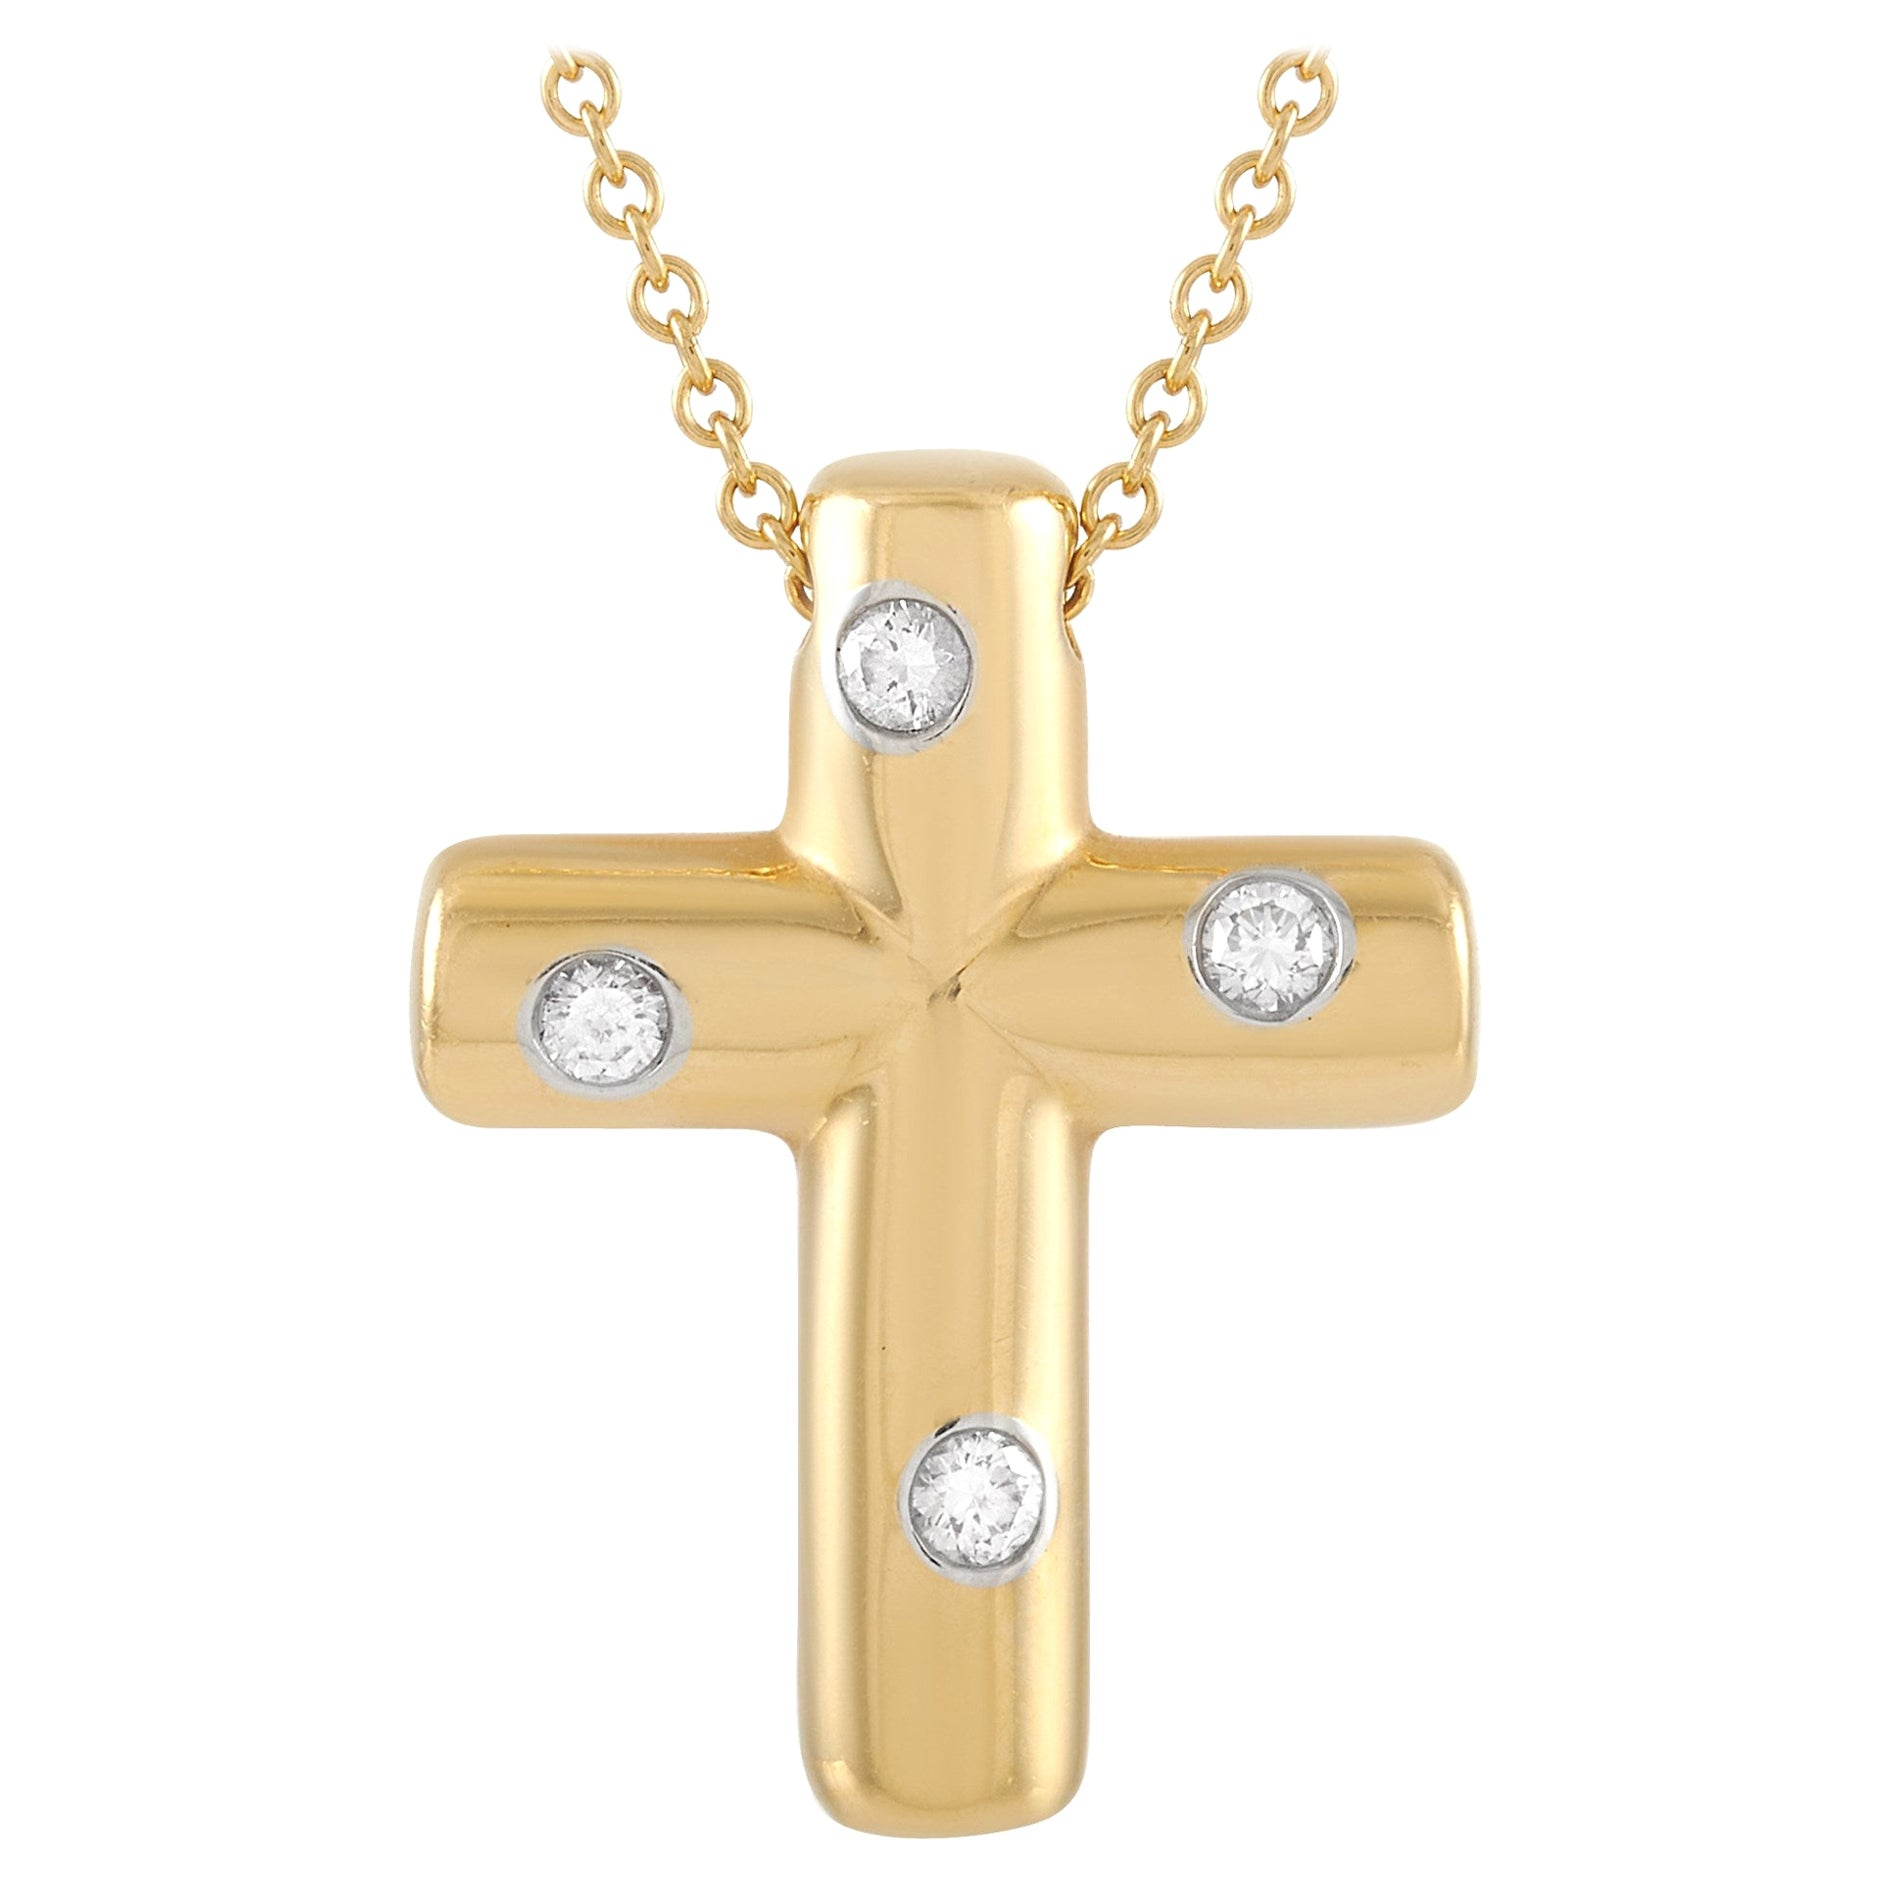 Tiffany & Co. 18 Karat Yellow Gold Diamond Cross Pendant Necklace